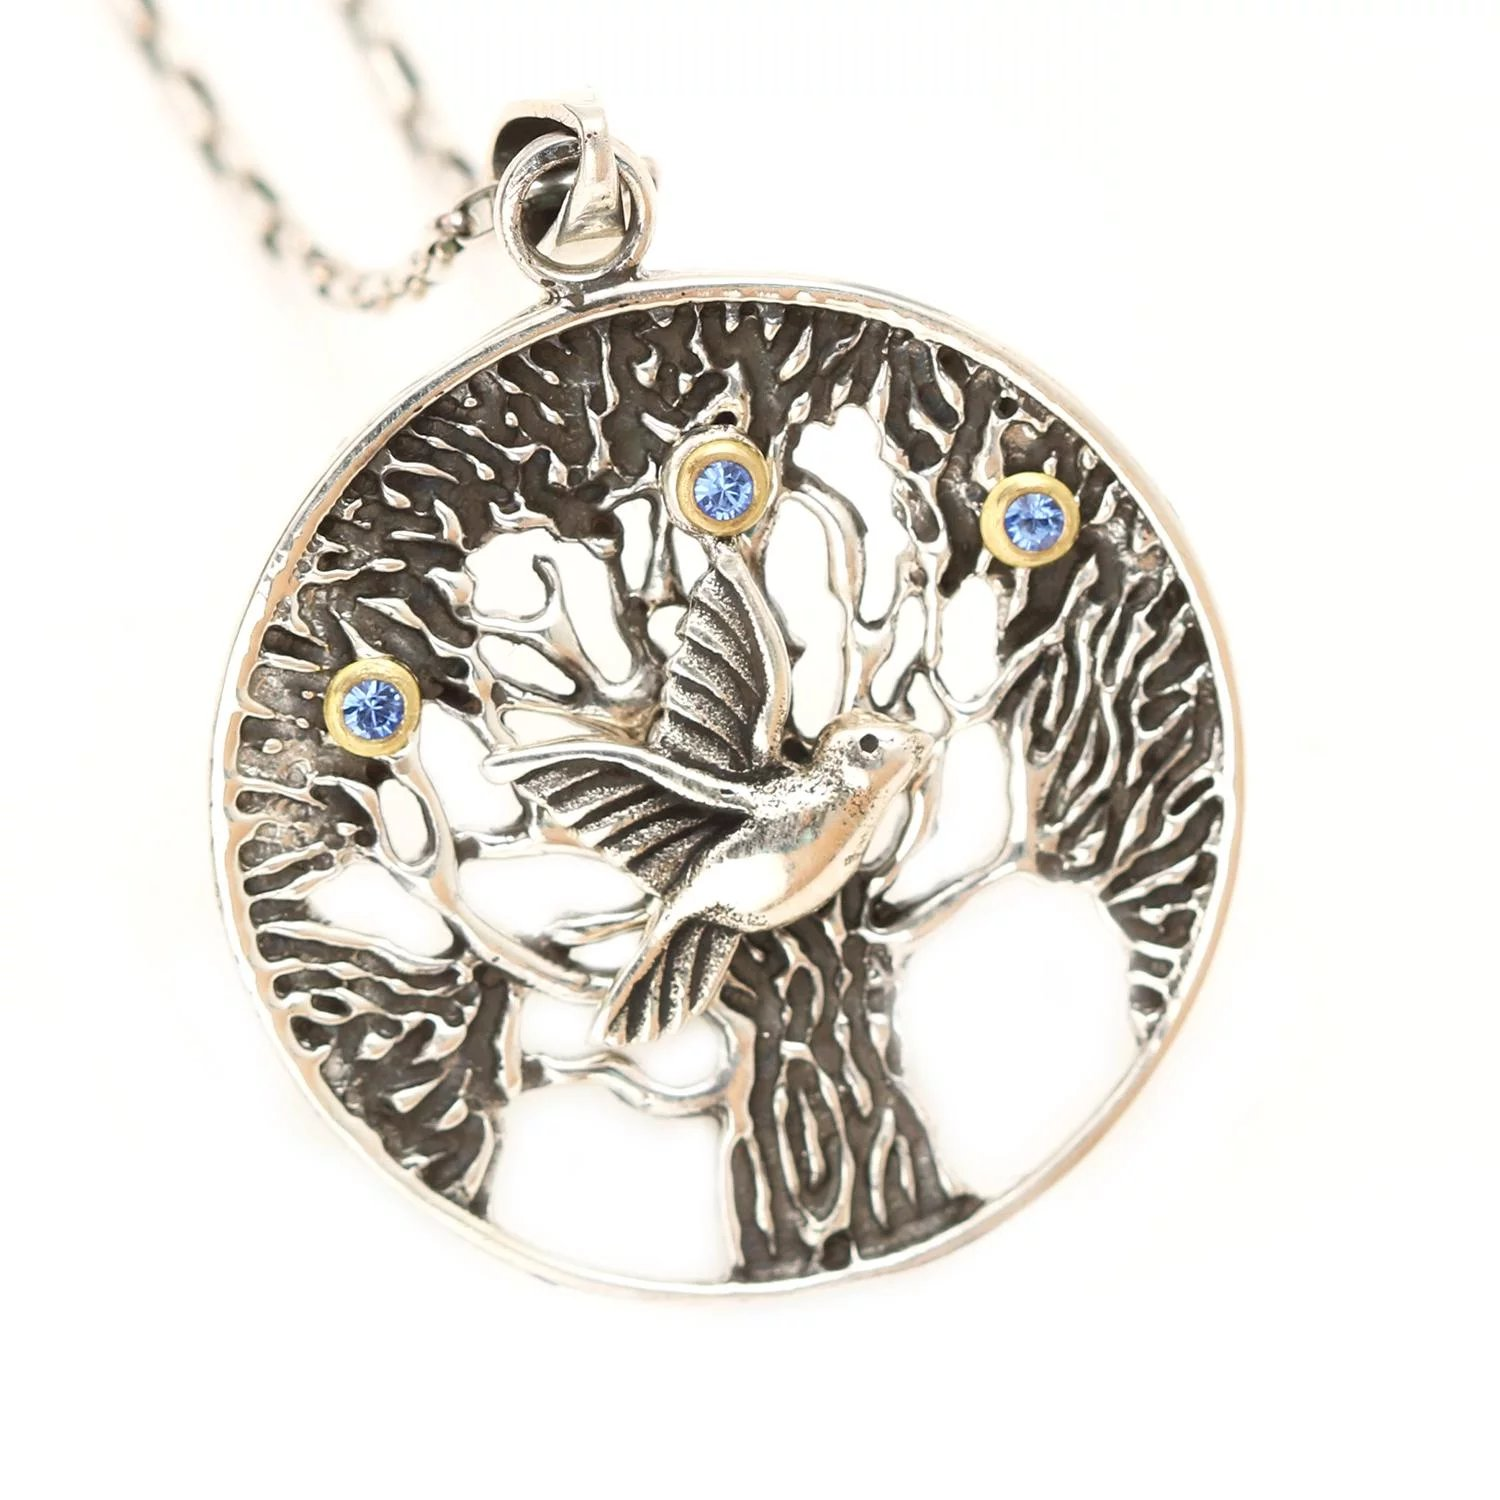 overstock watches family tree product floating love heart orders round crystals over free necklace charm on pendant queenberry locket jewelry shipping